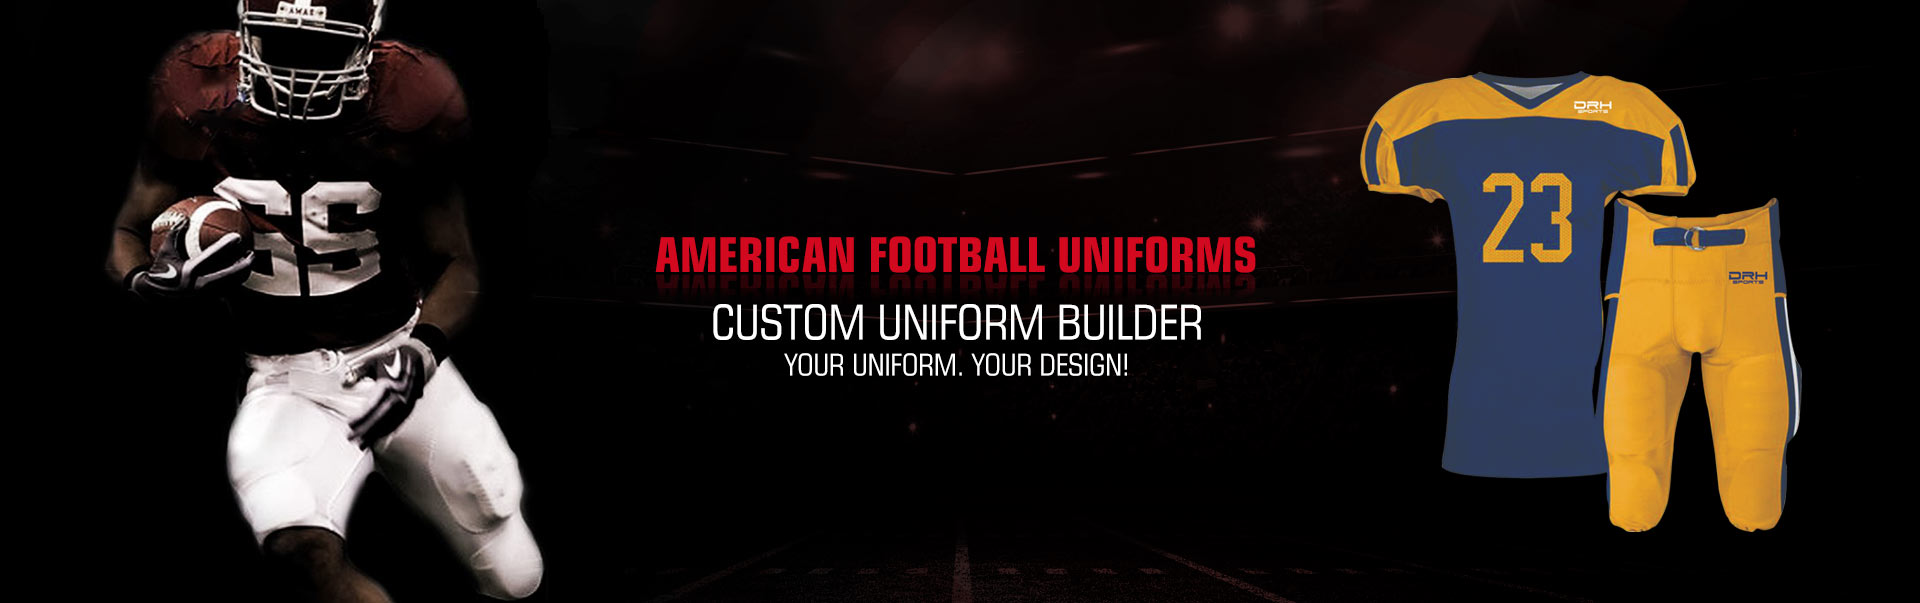 American Football Uniform Wholesaler, Suppliers in Jena